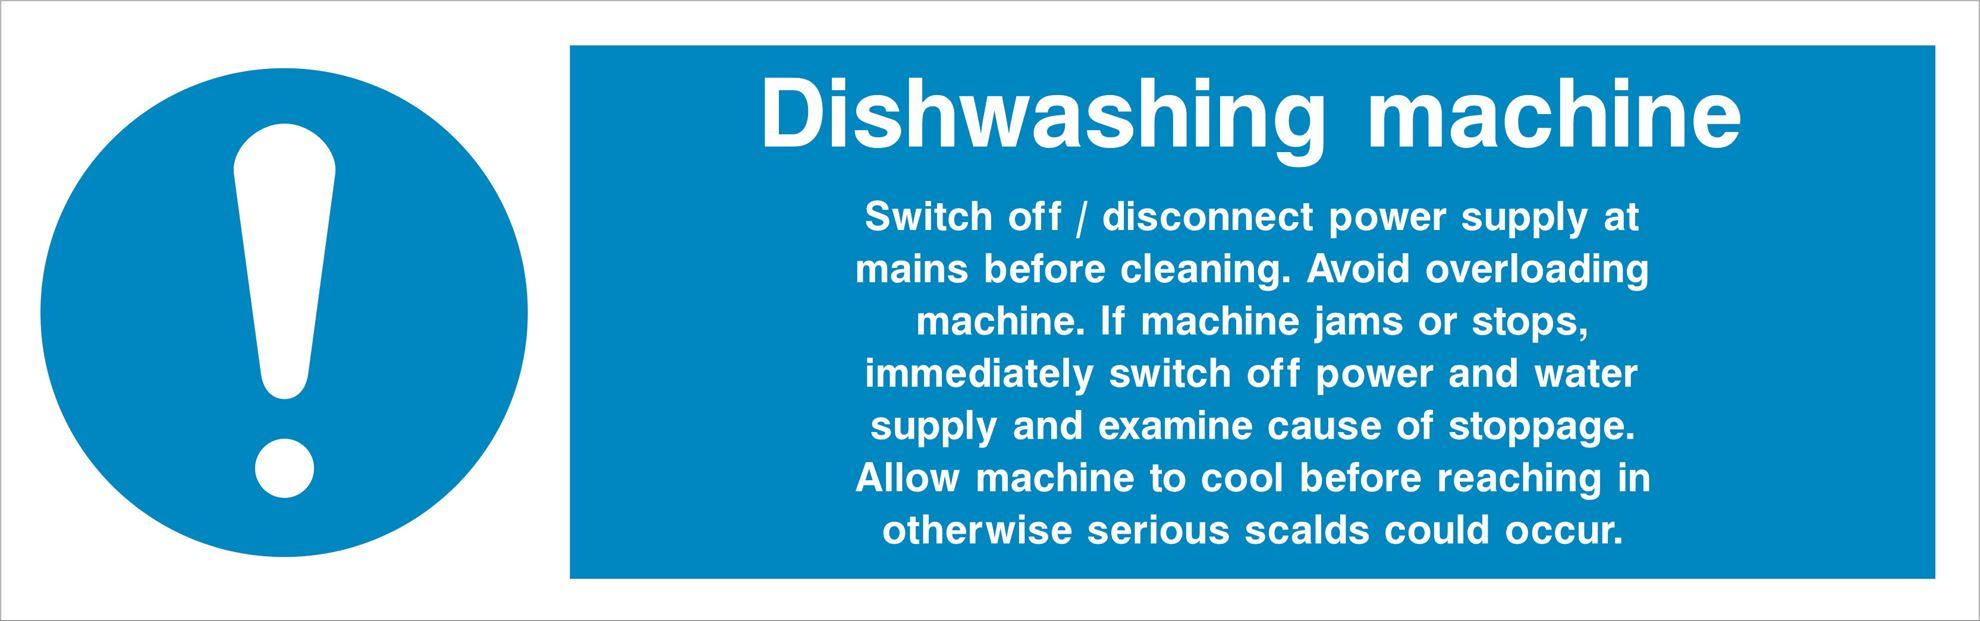 Dishwashing machine